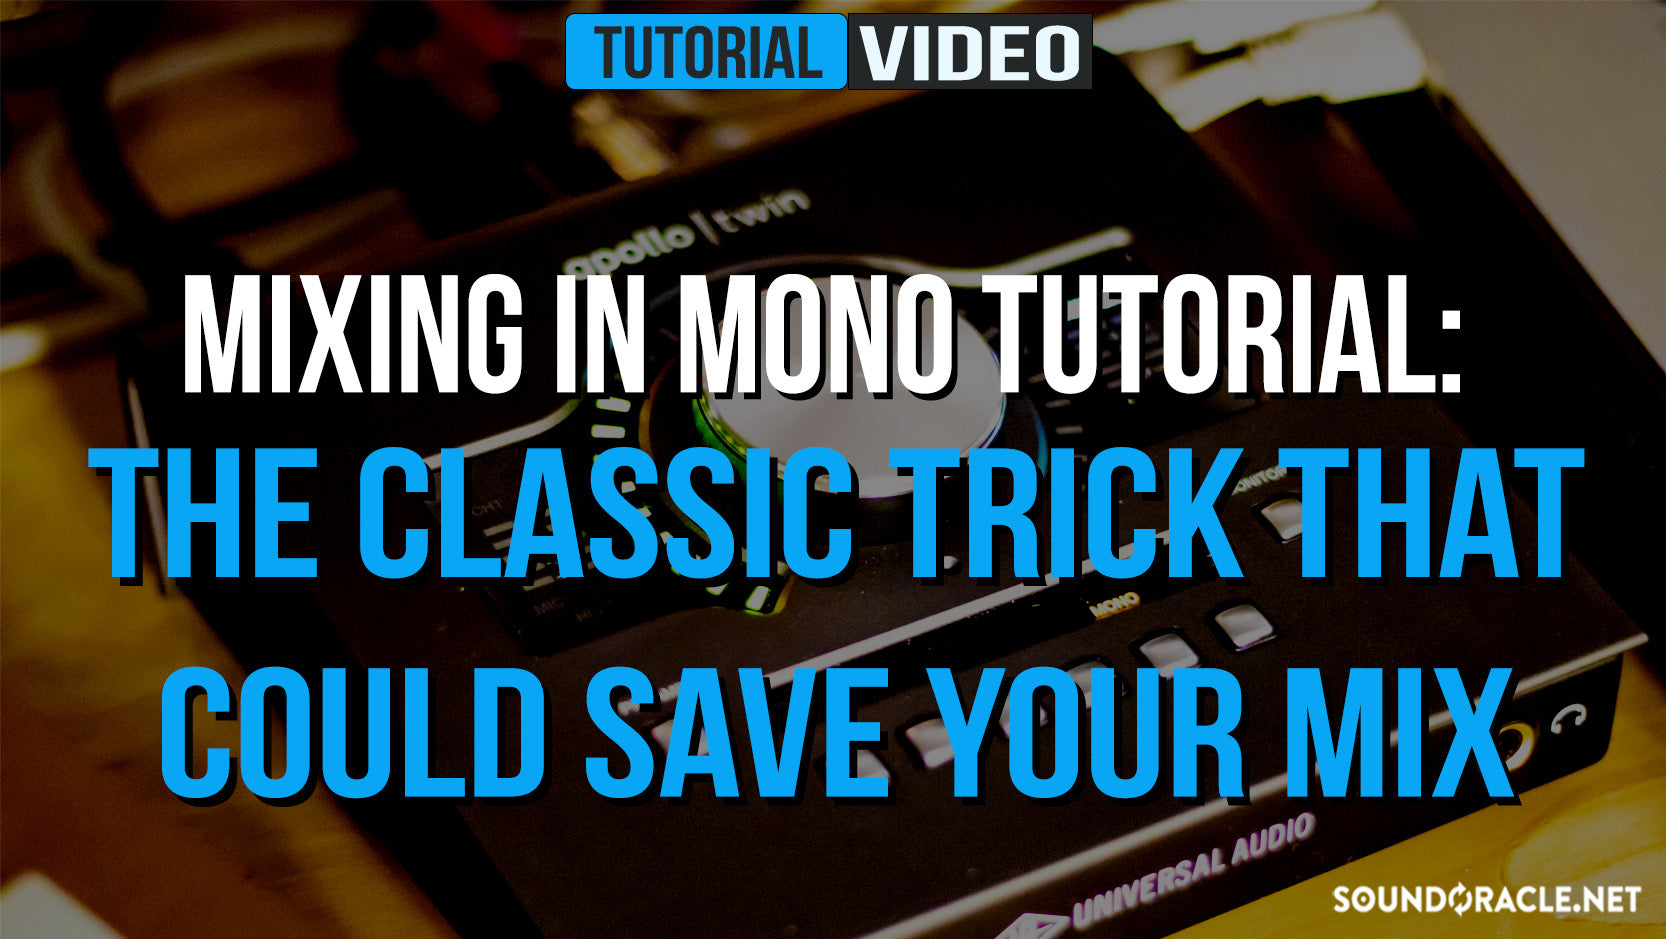 Mixing in Mono Tutorial: The Classic Trick That Could Save Your Mix